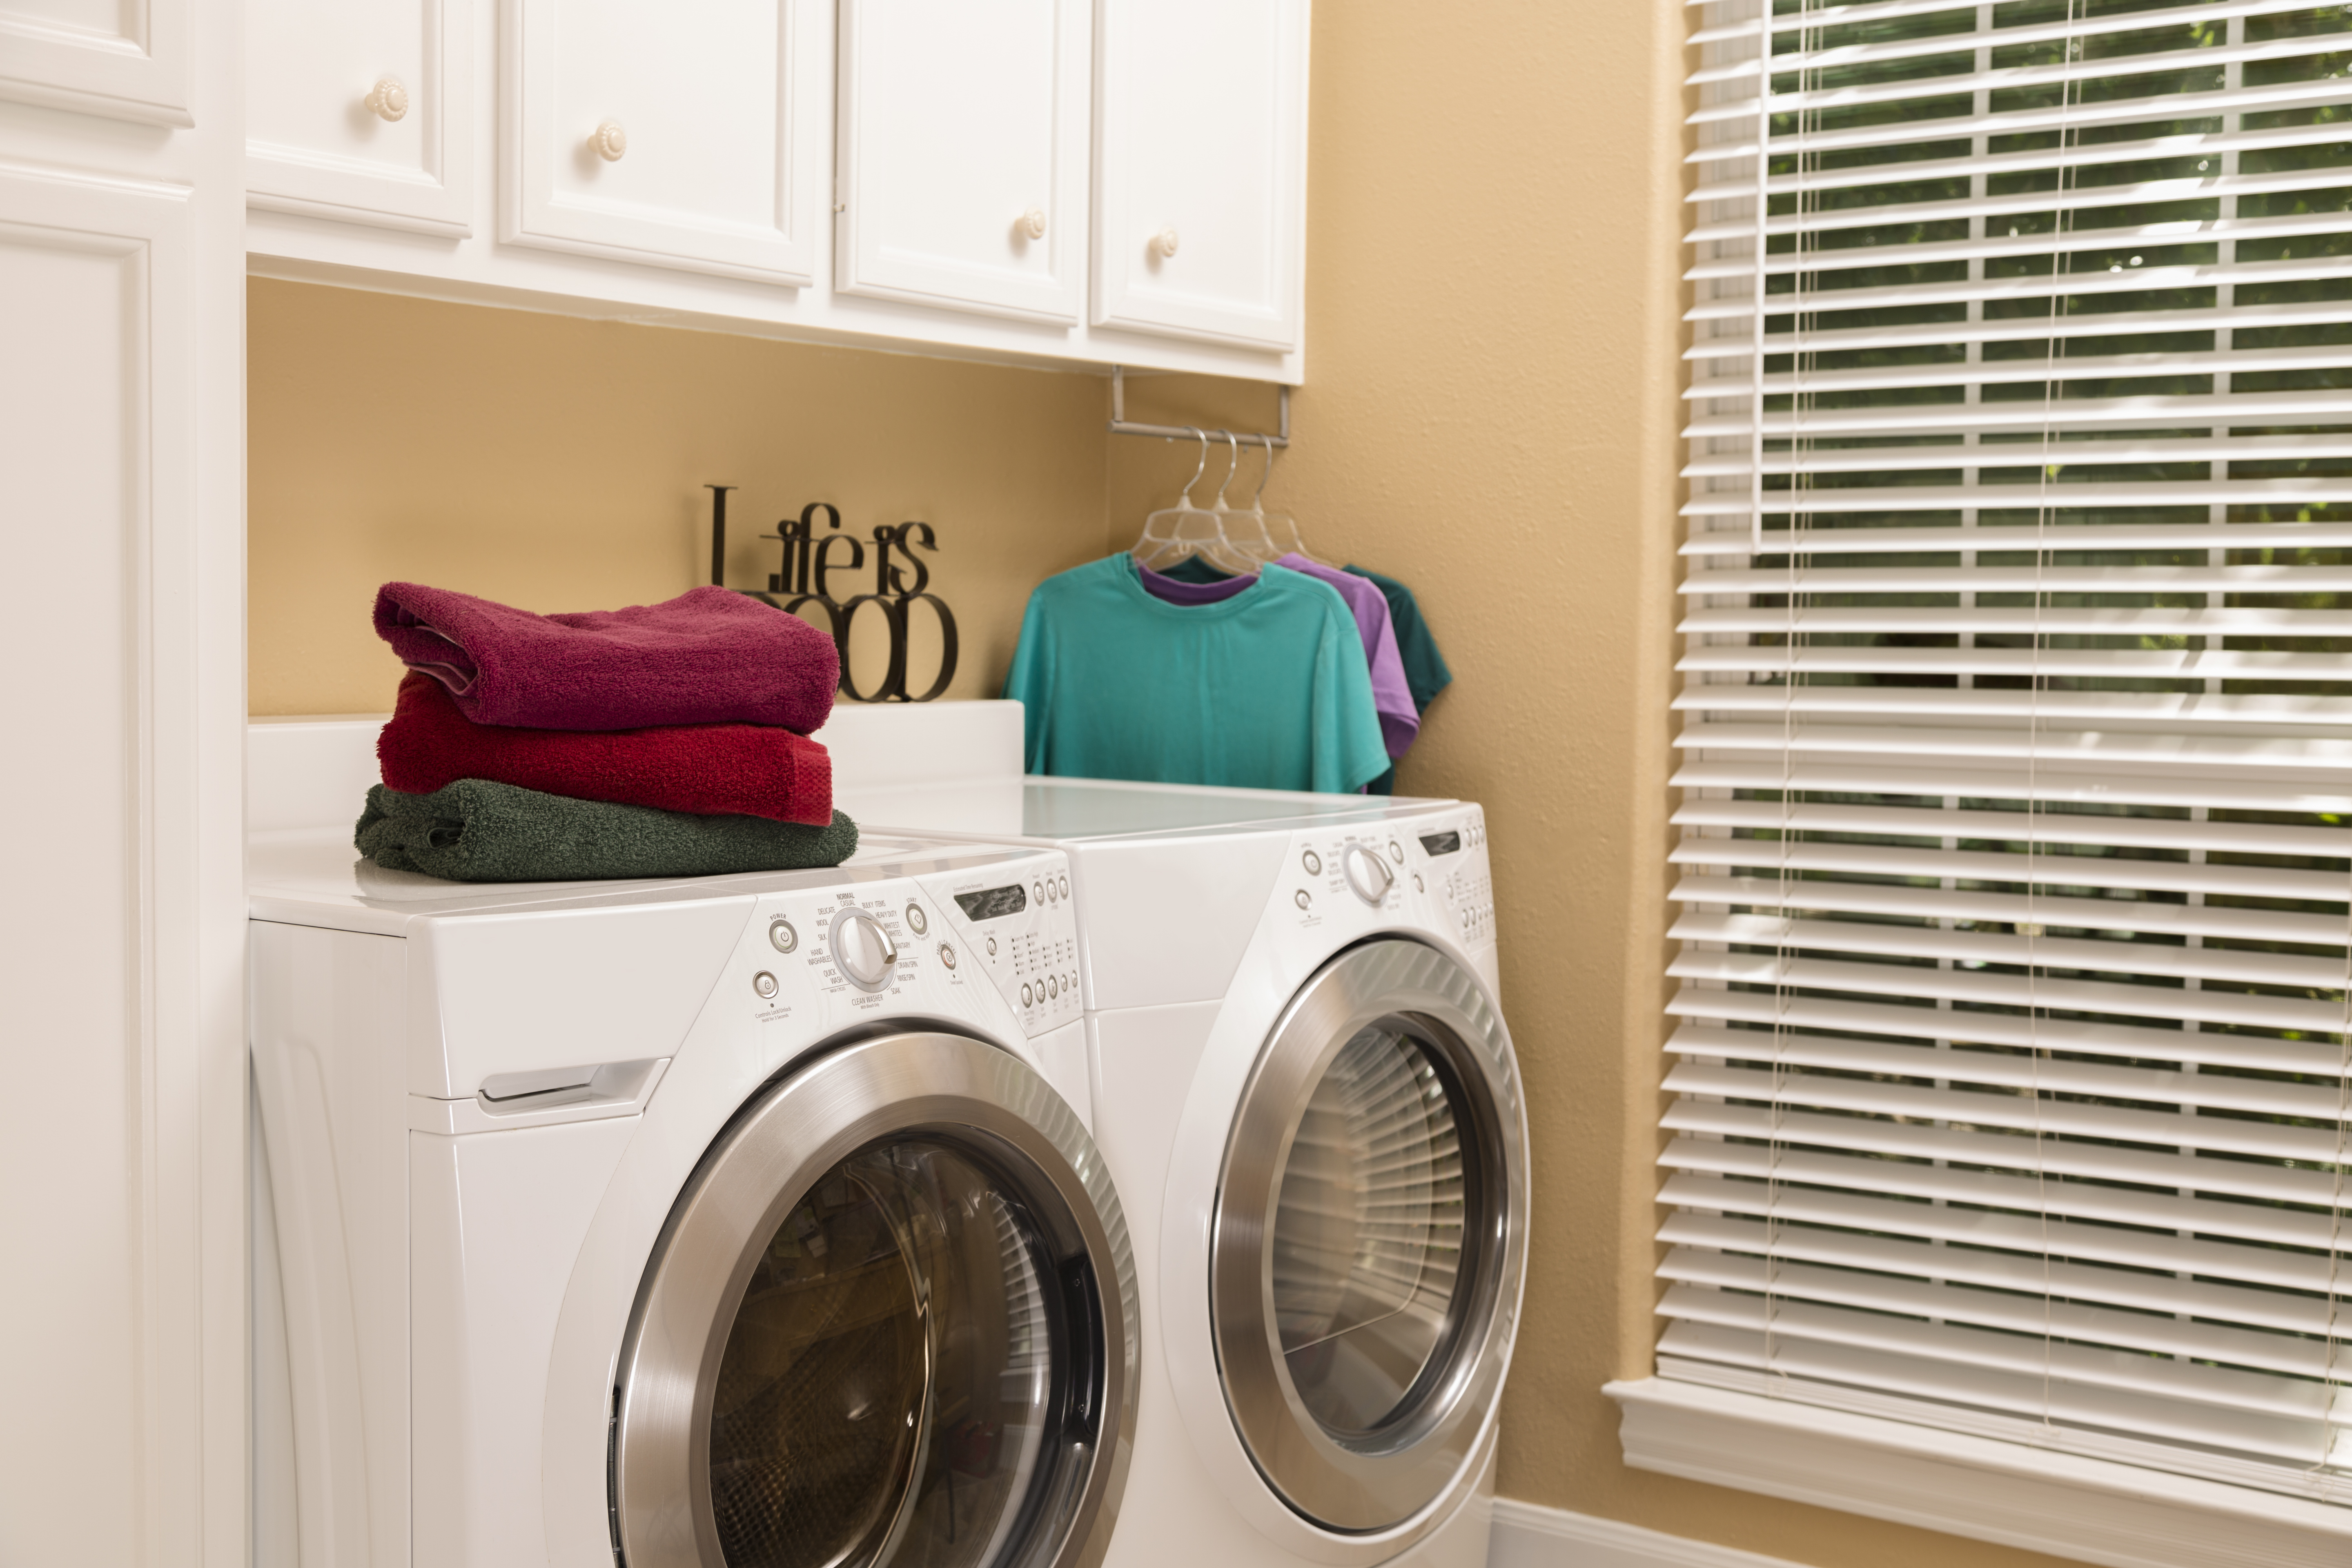 Domestic Life: Laundry room with folded towels, clothes.